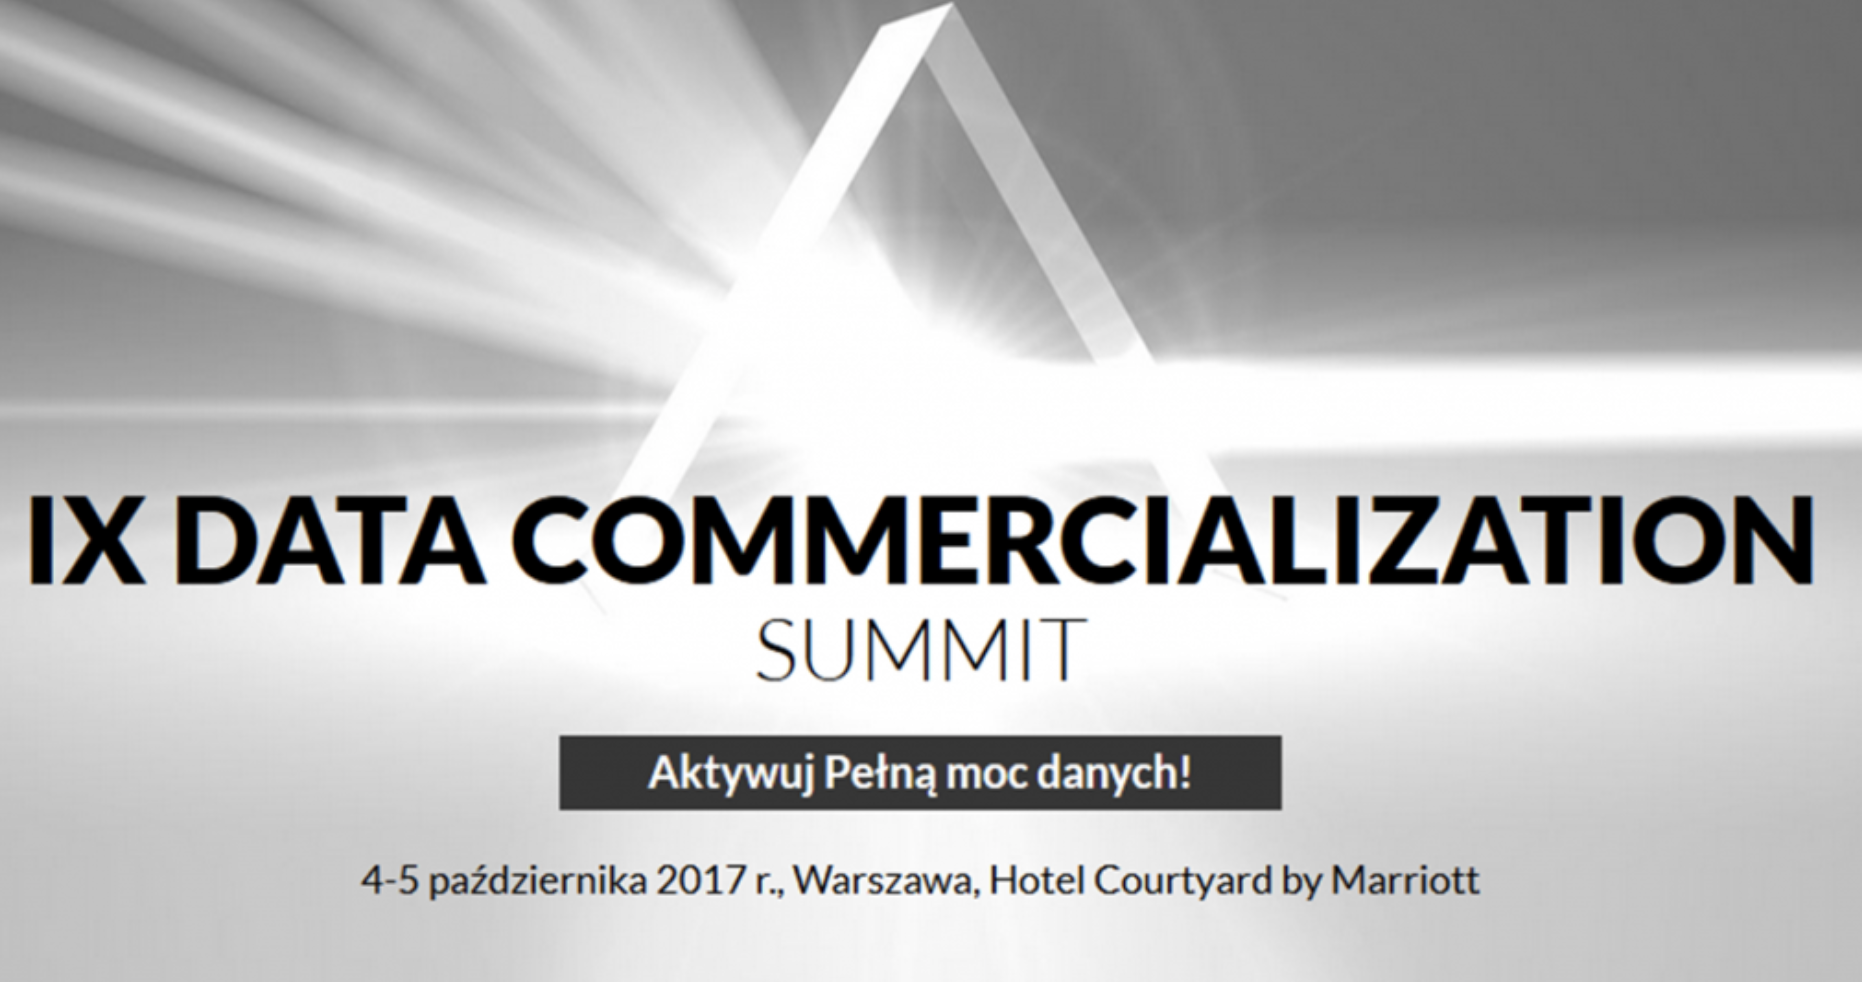 Data commercialization summit